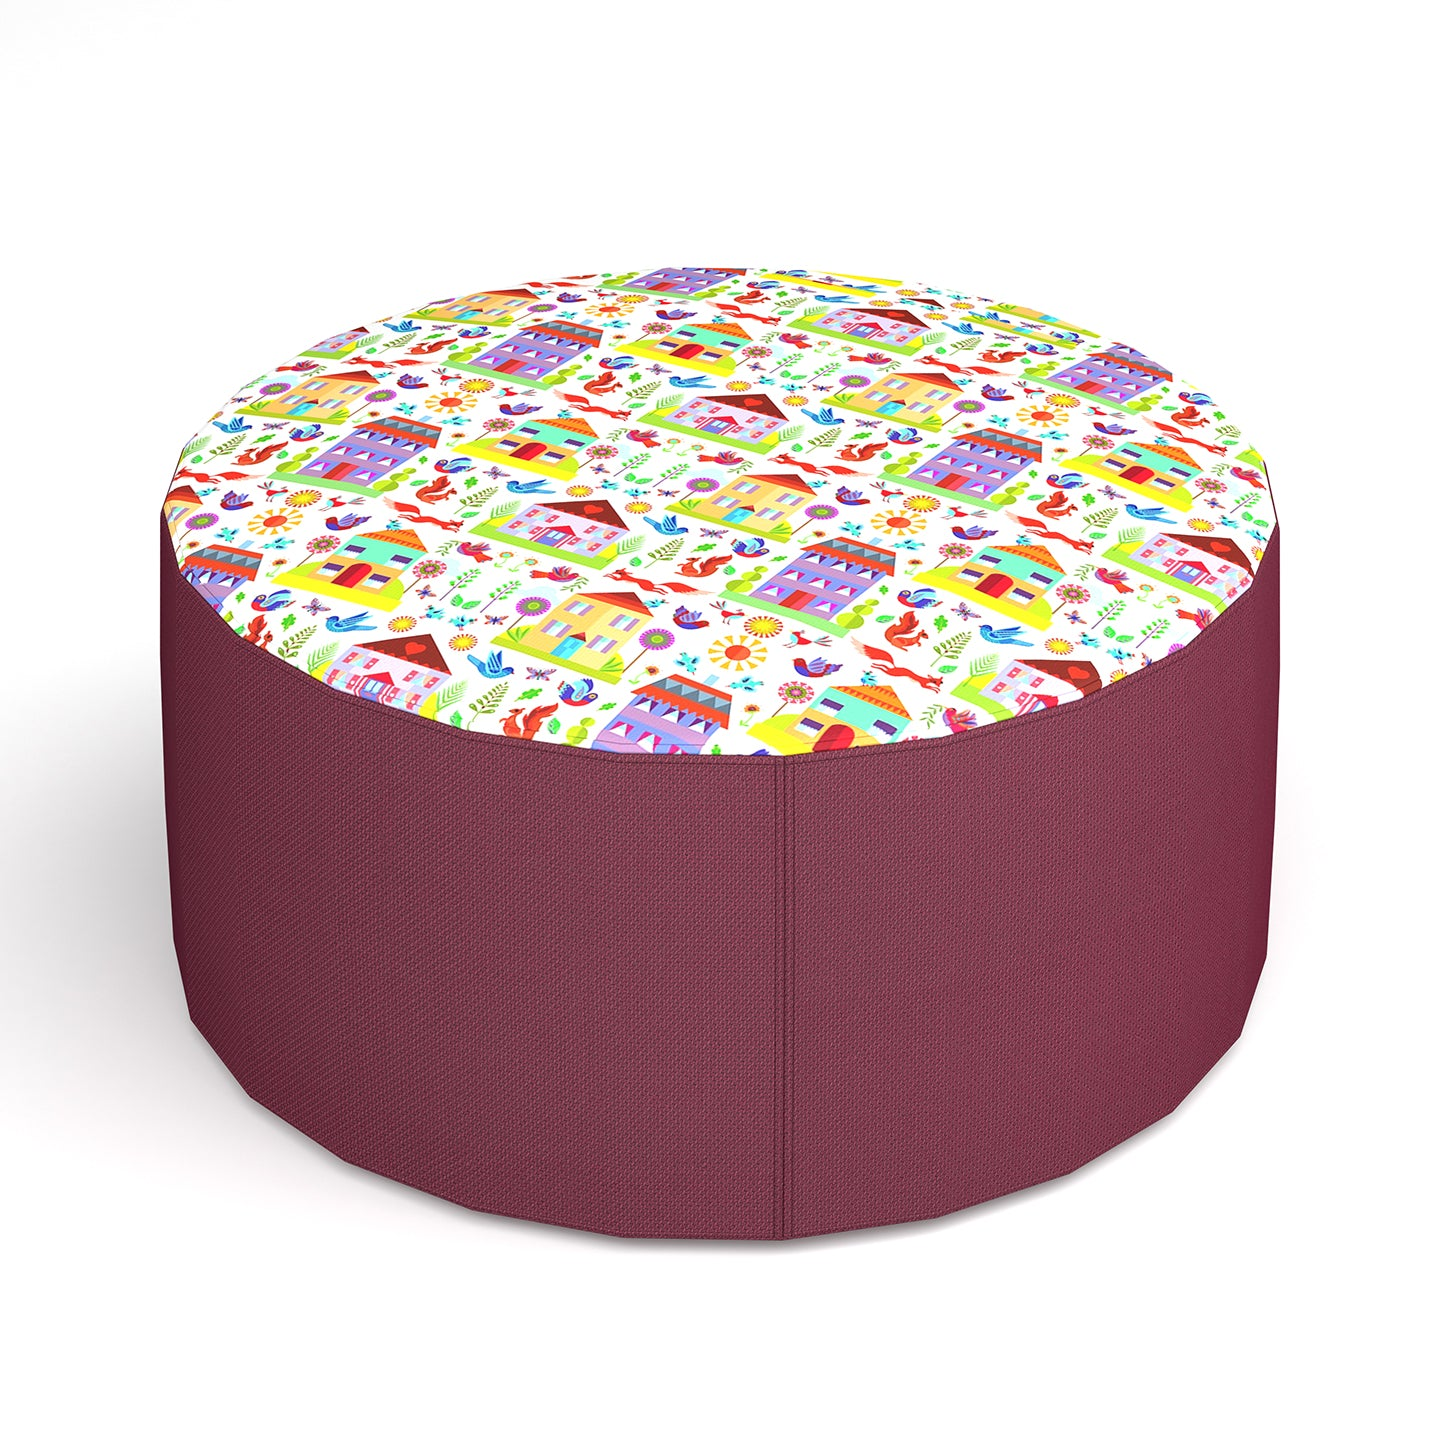 Bop Placeable Round Stool